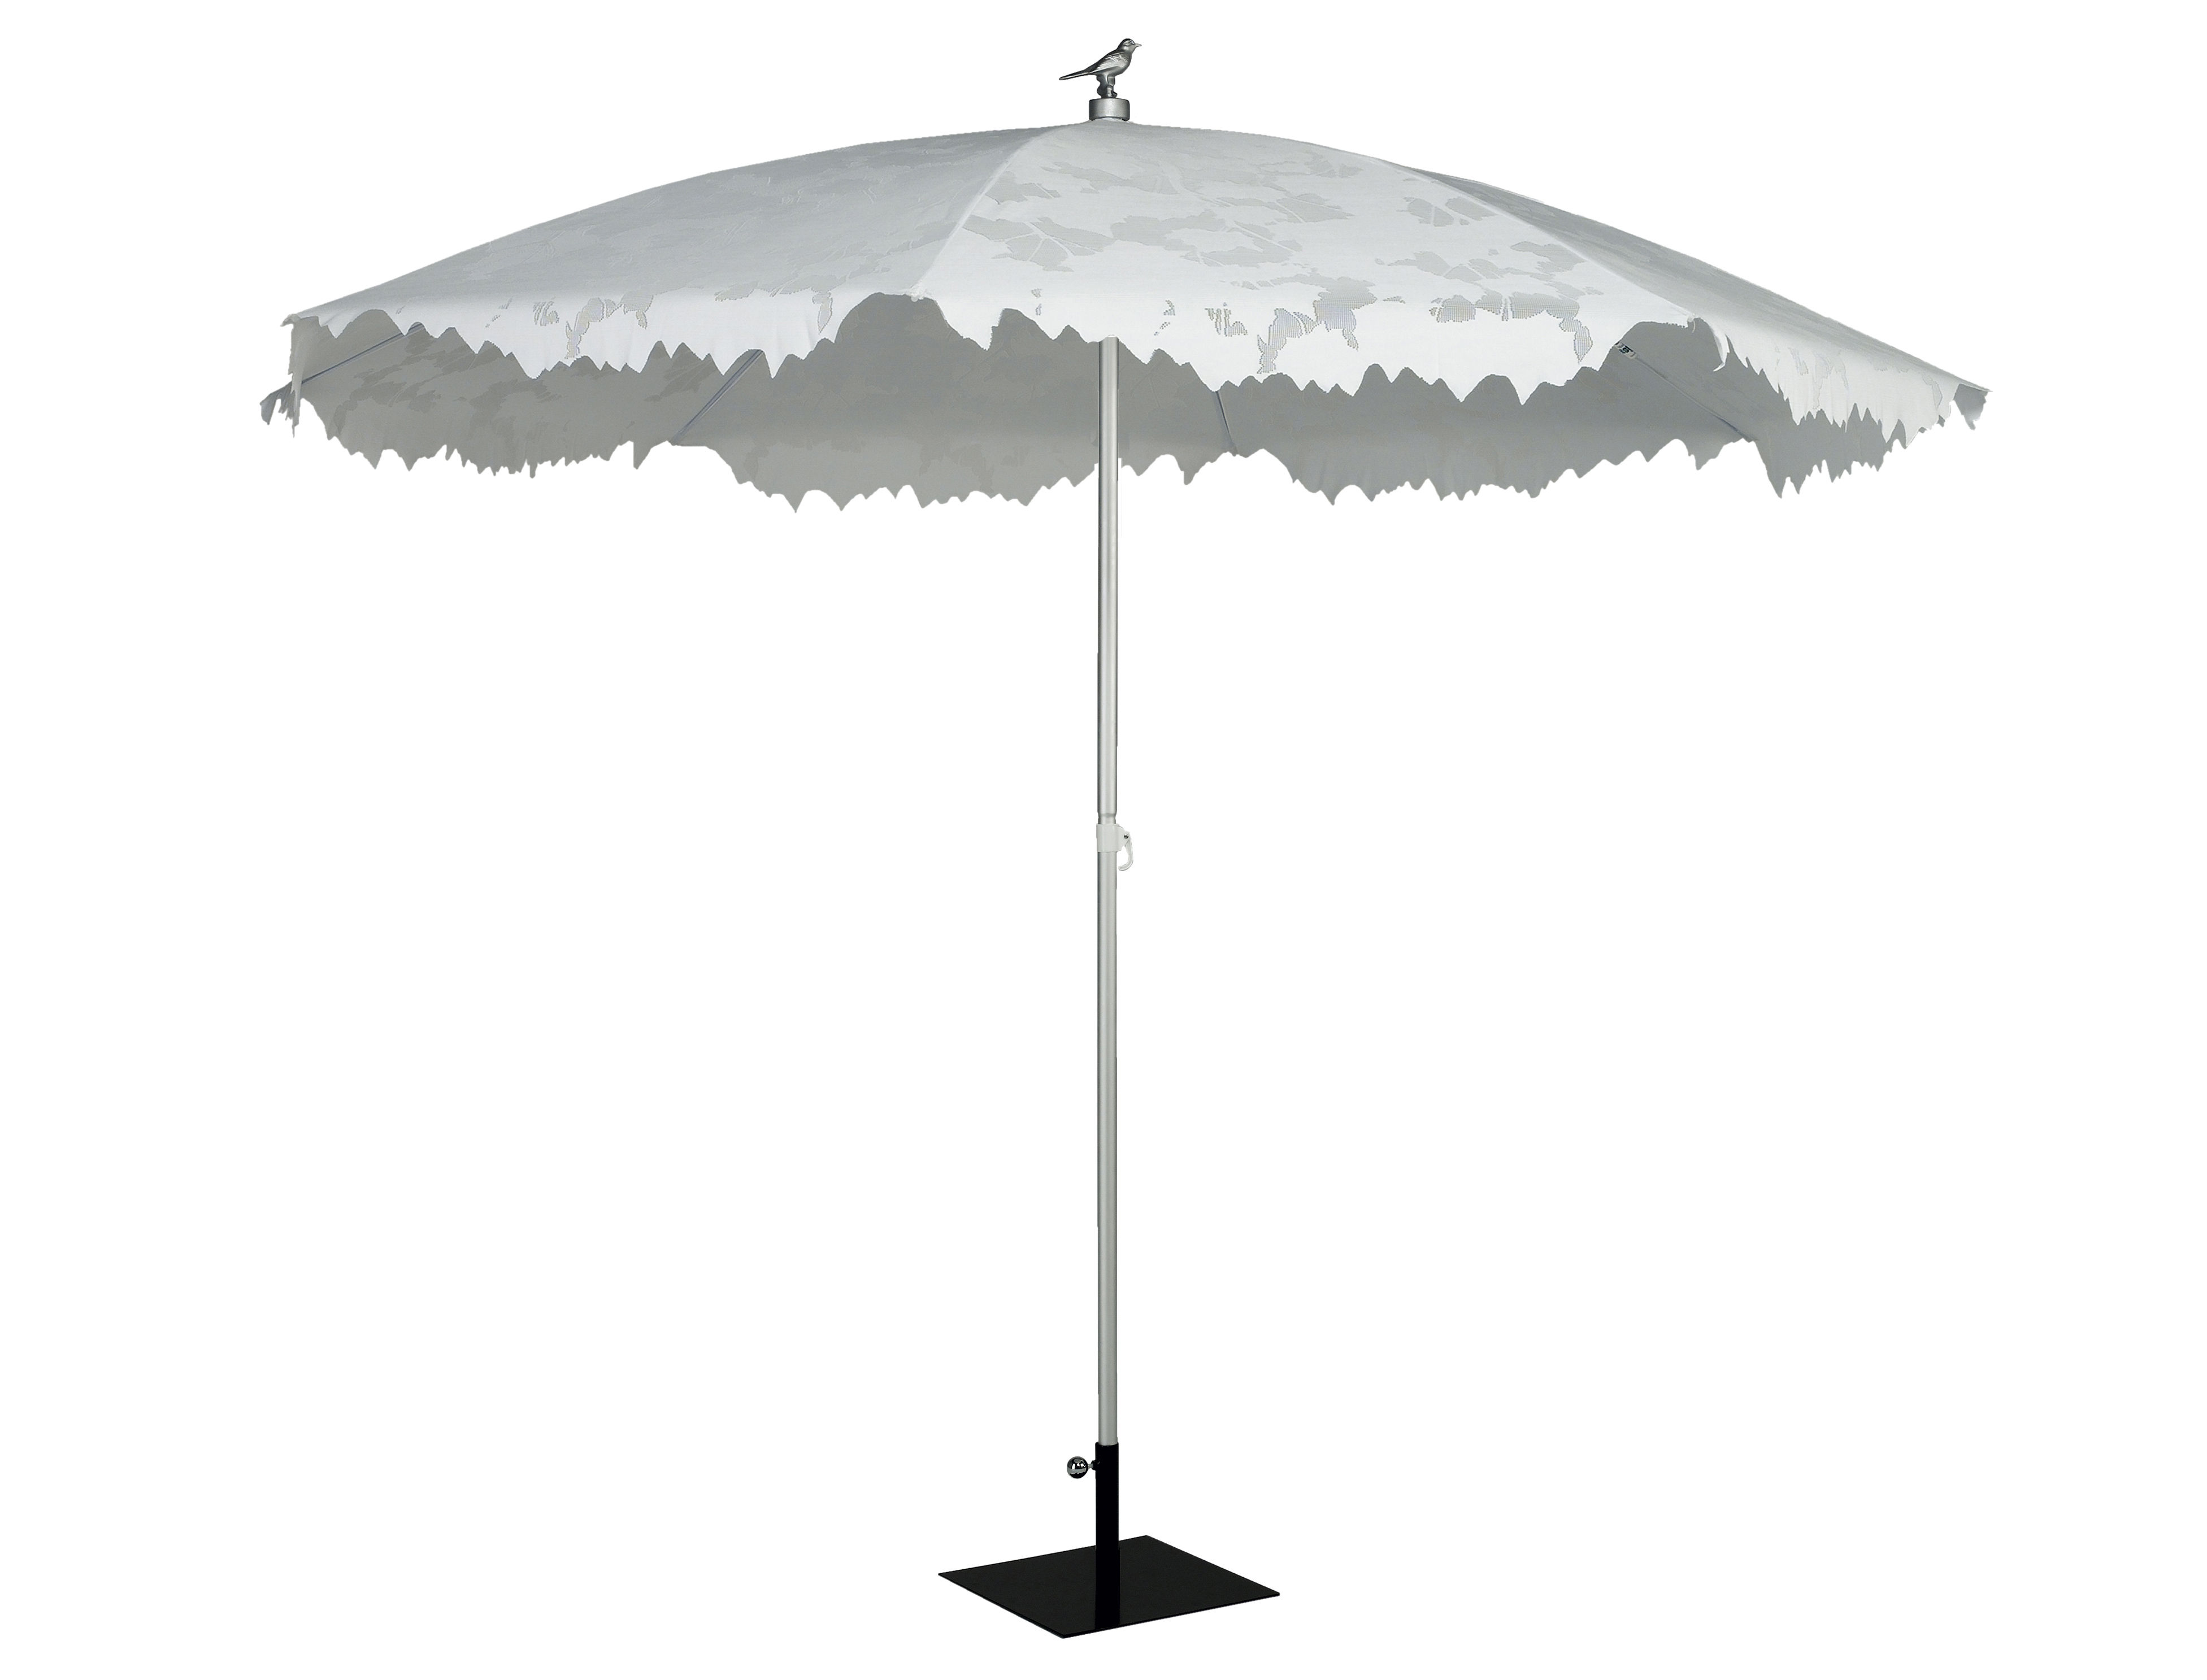 shadylace xl parasol 350 cm white sunshade by sywawa. Black Bedroom Furniture Sets. Home Design Ideas